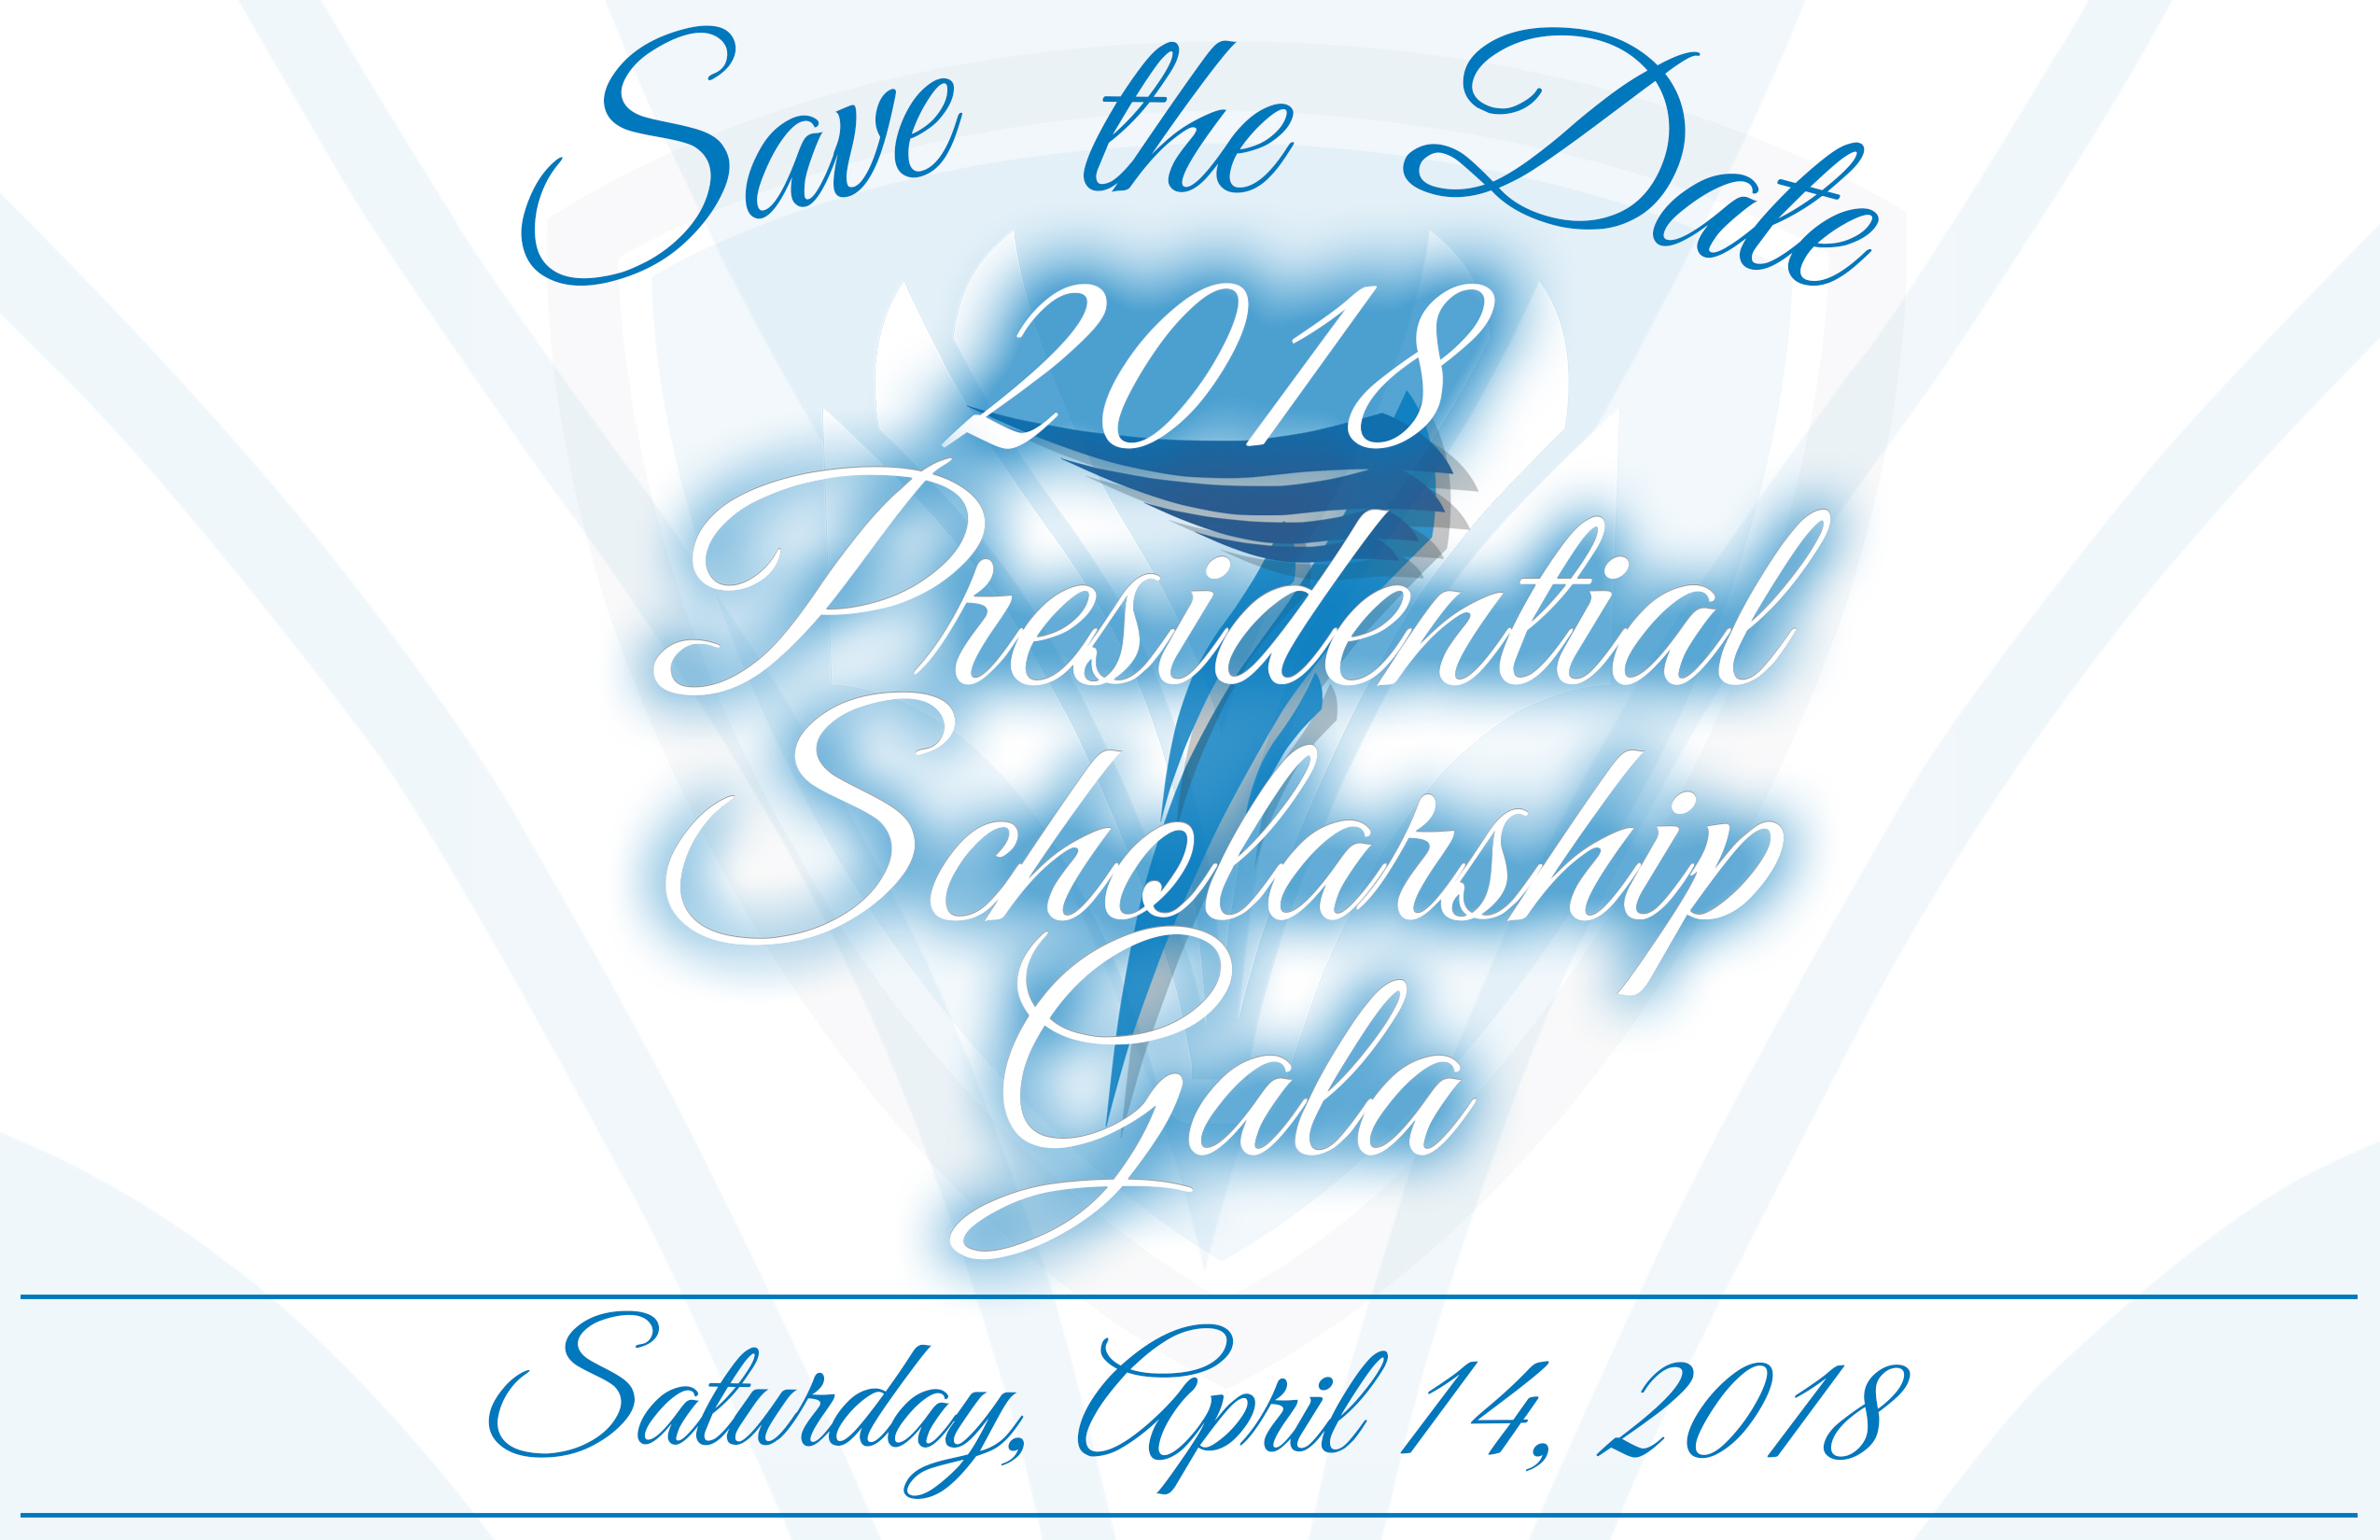 Voorhees college 2018 presidential scholarship gala creating a different legacy of leaders m4hsunfo